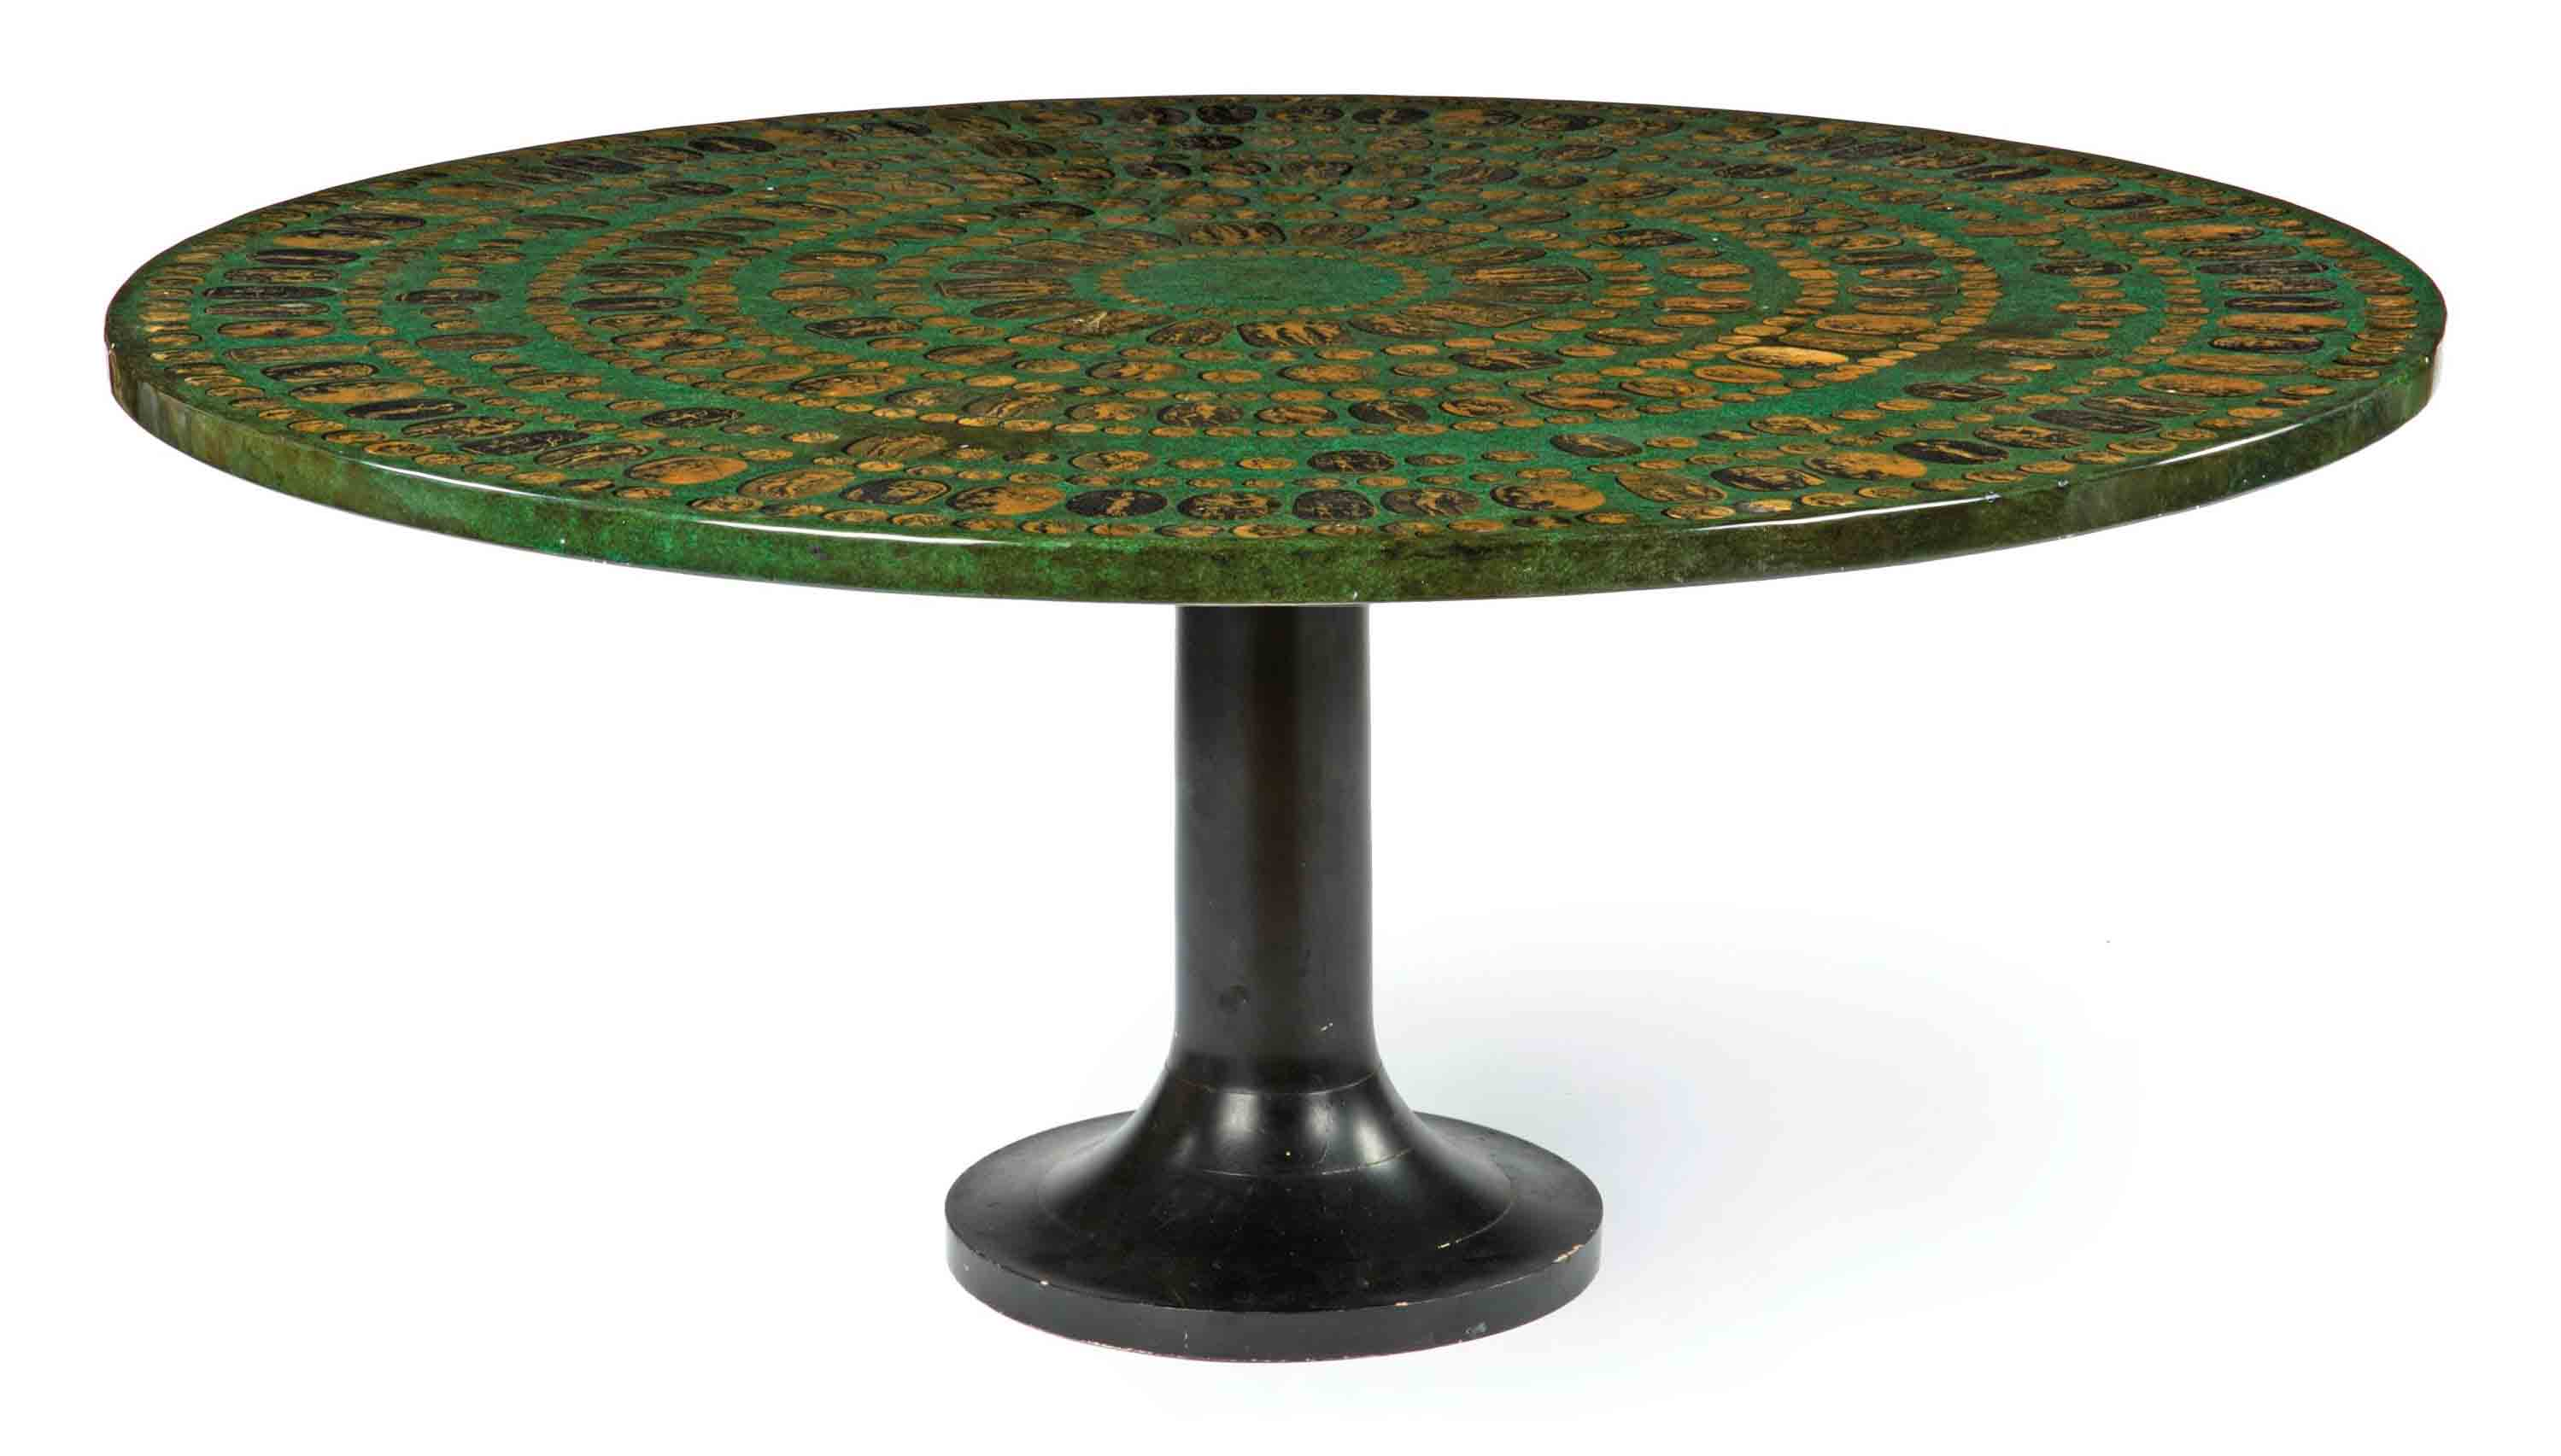 AN ITALIAN GREEN MARBLEISED, EBONISED AND TRANSFER-PRINTED WOOD CENTRE TABLE